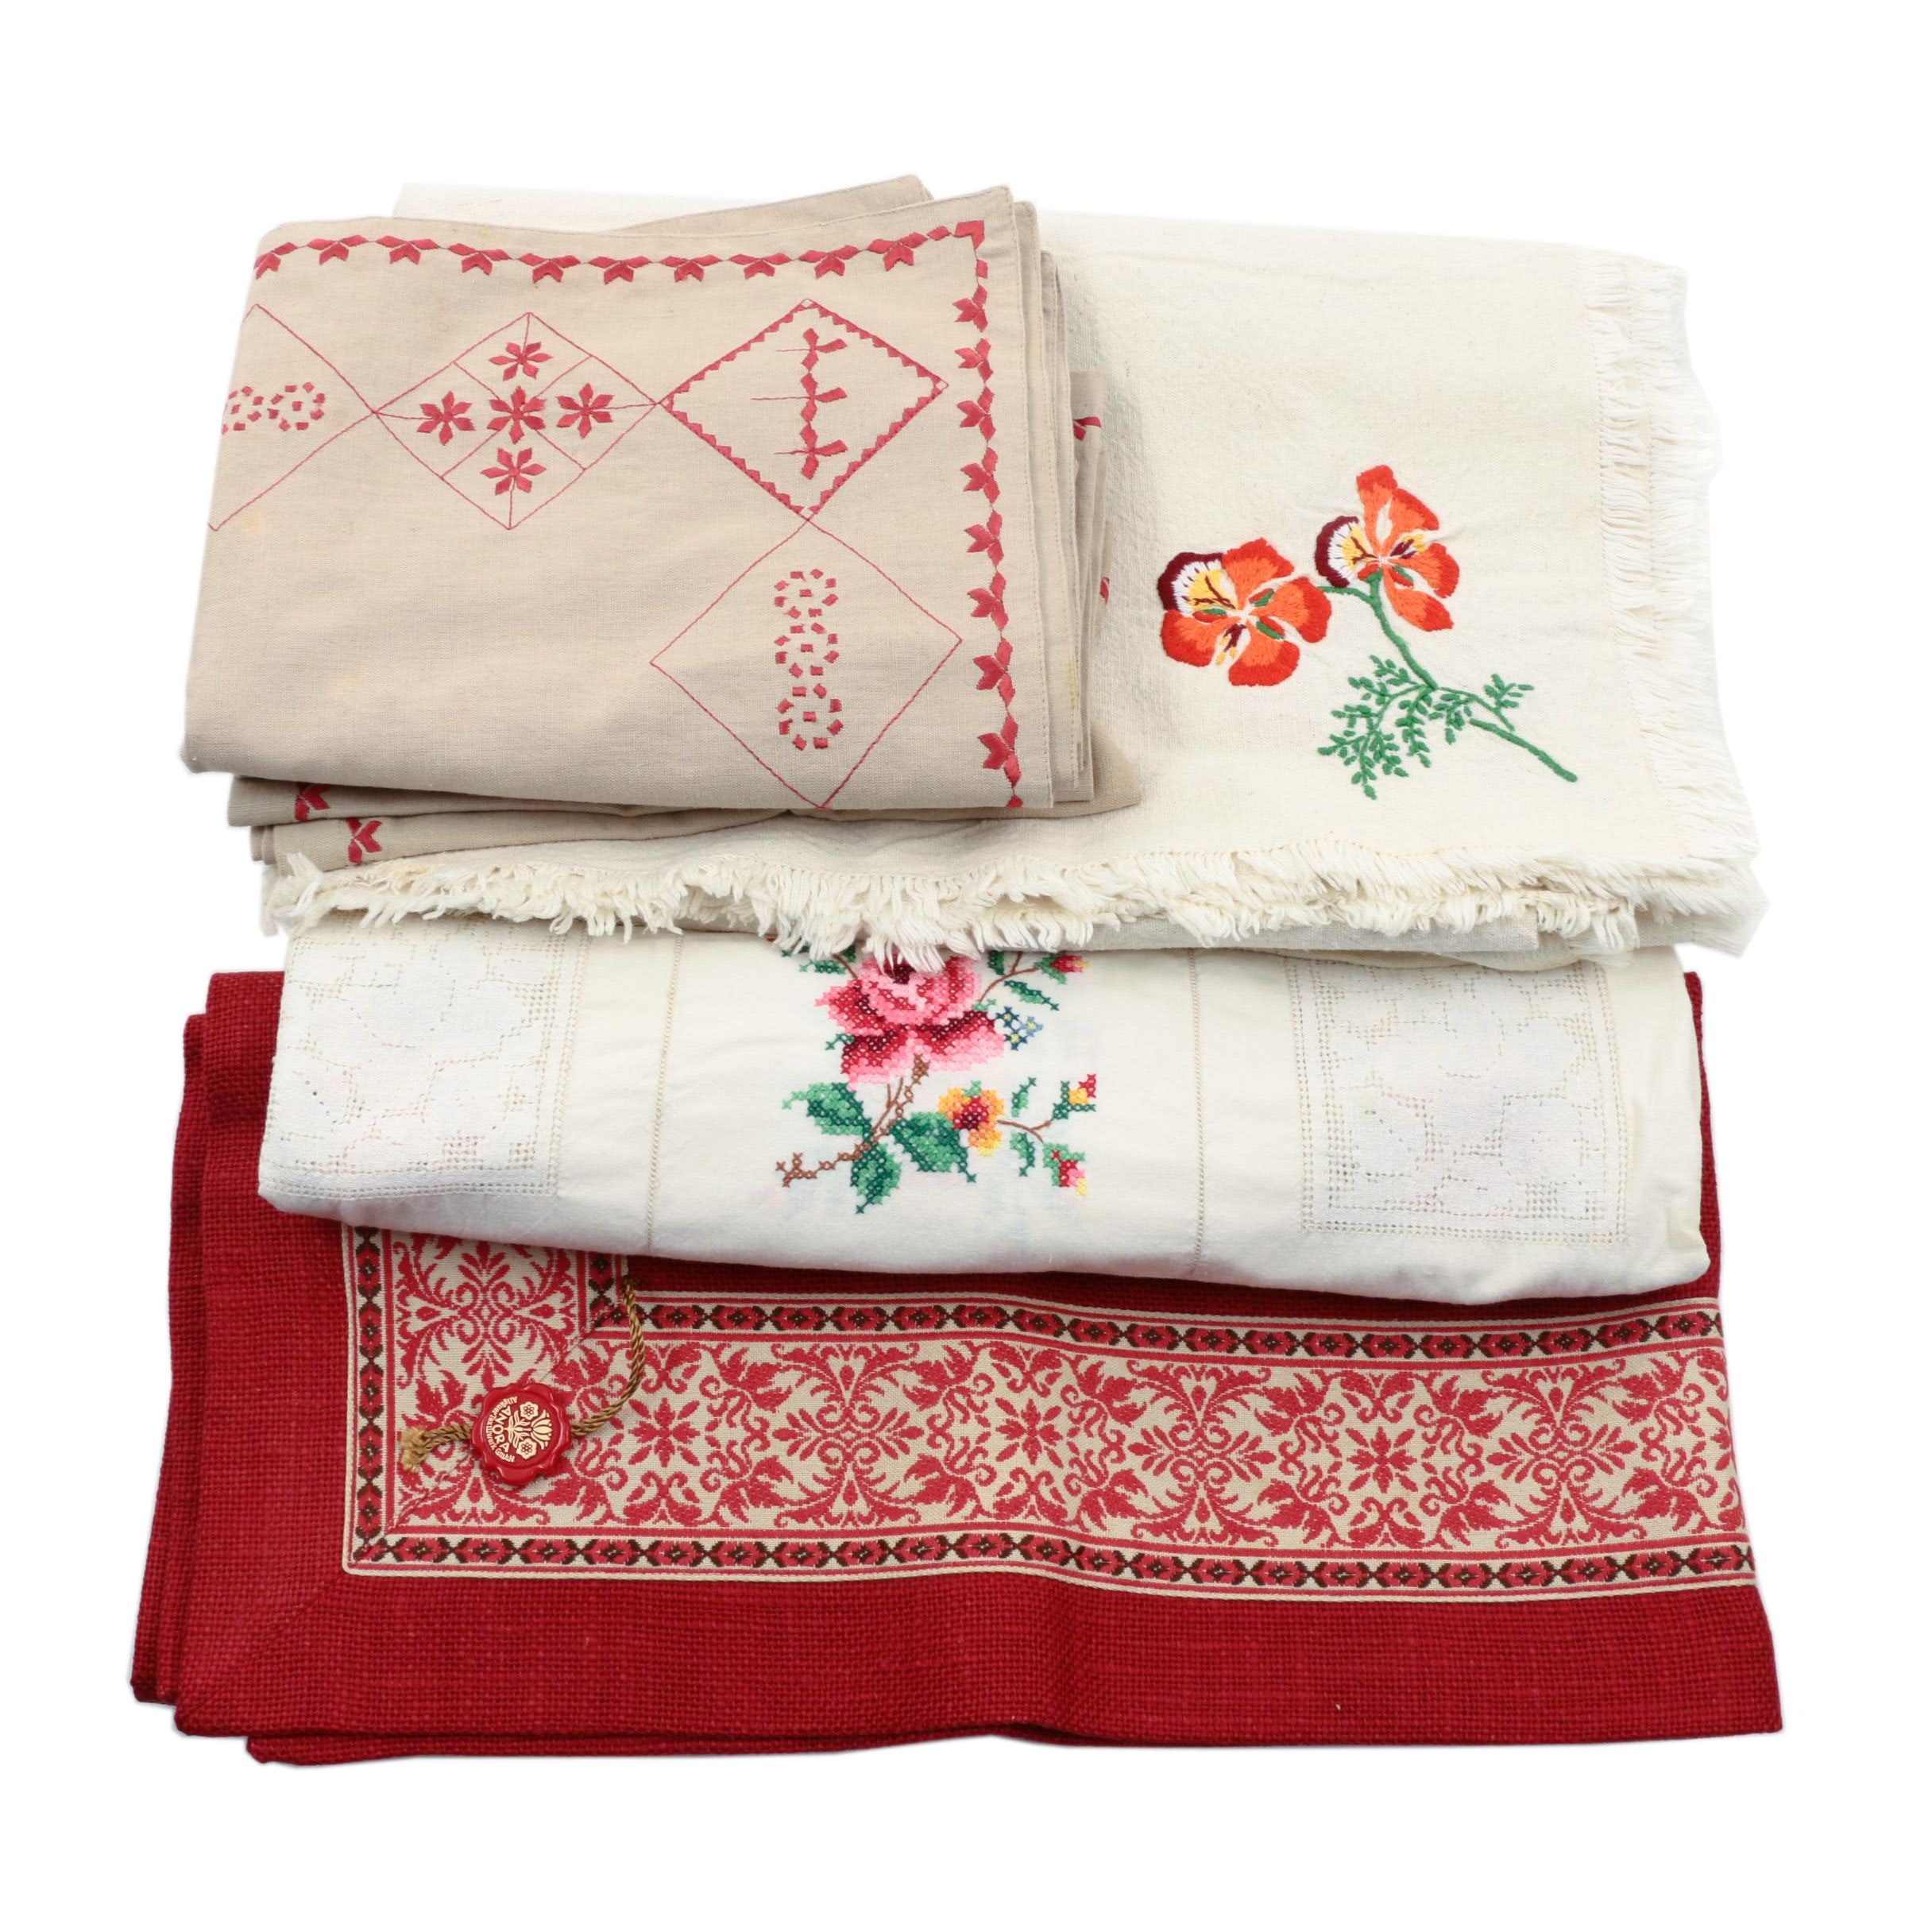 Assortment of Embroidered Textiles and Linens